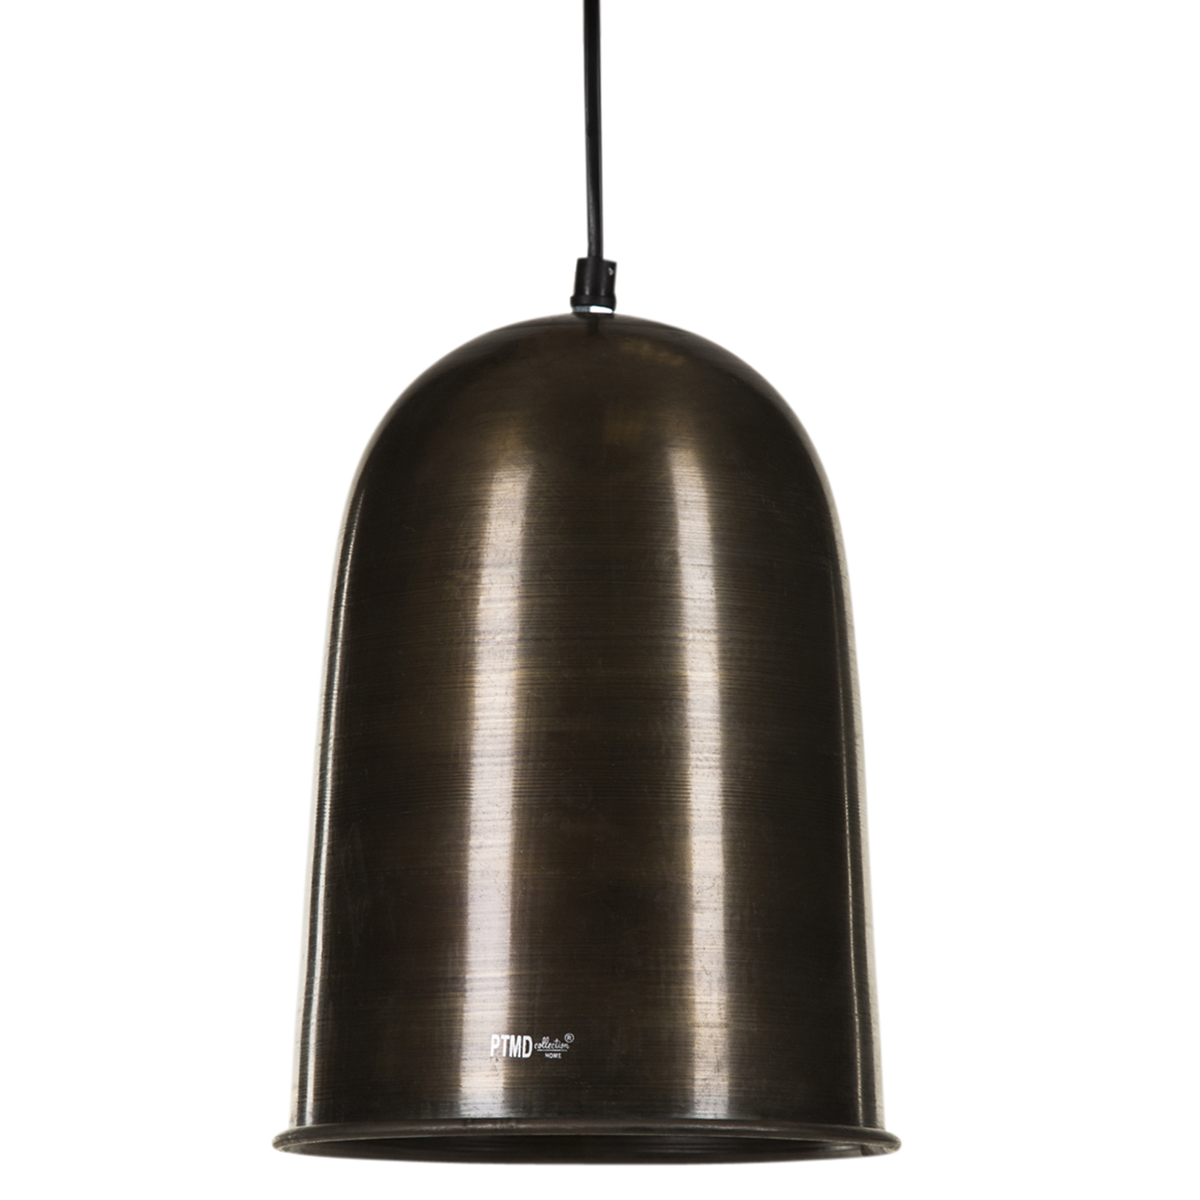 PTMD Iron brass hanging lamp